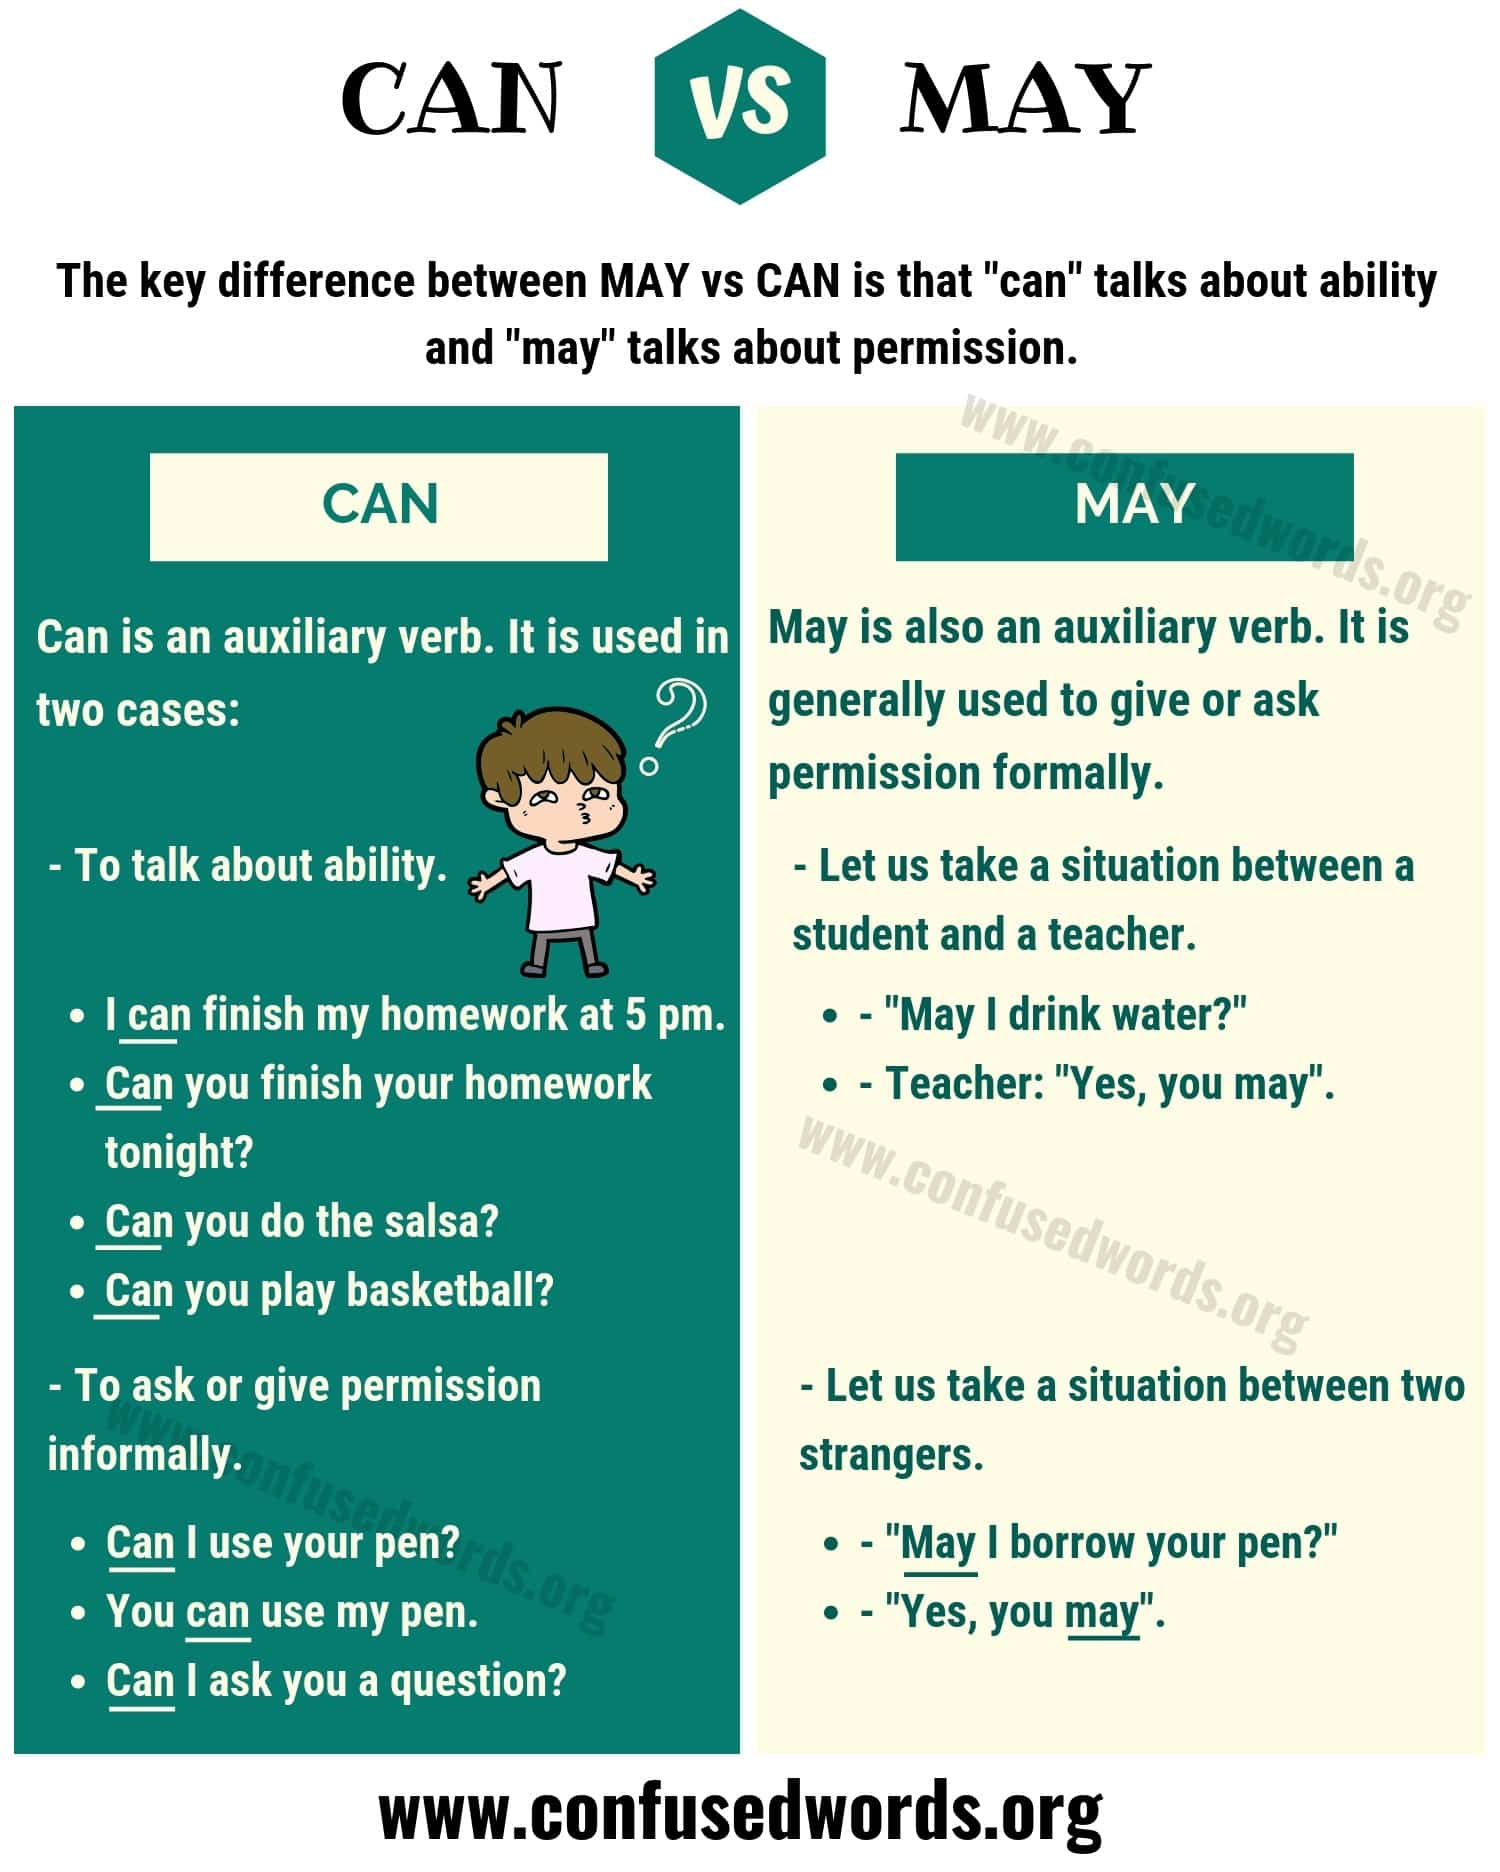 CAN vs MAY